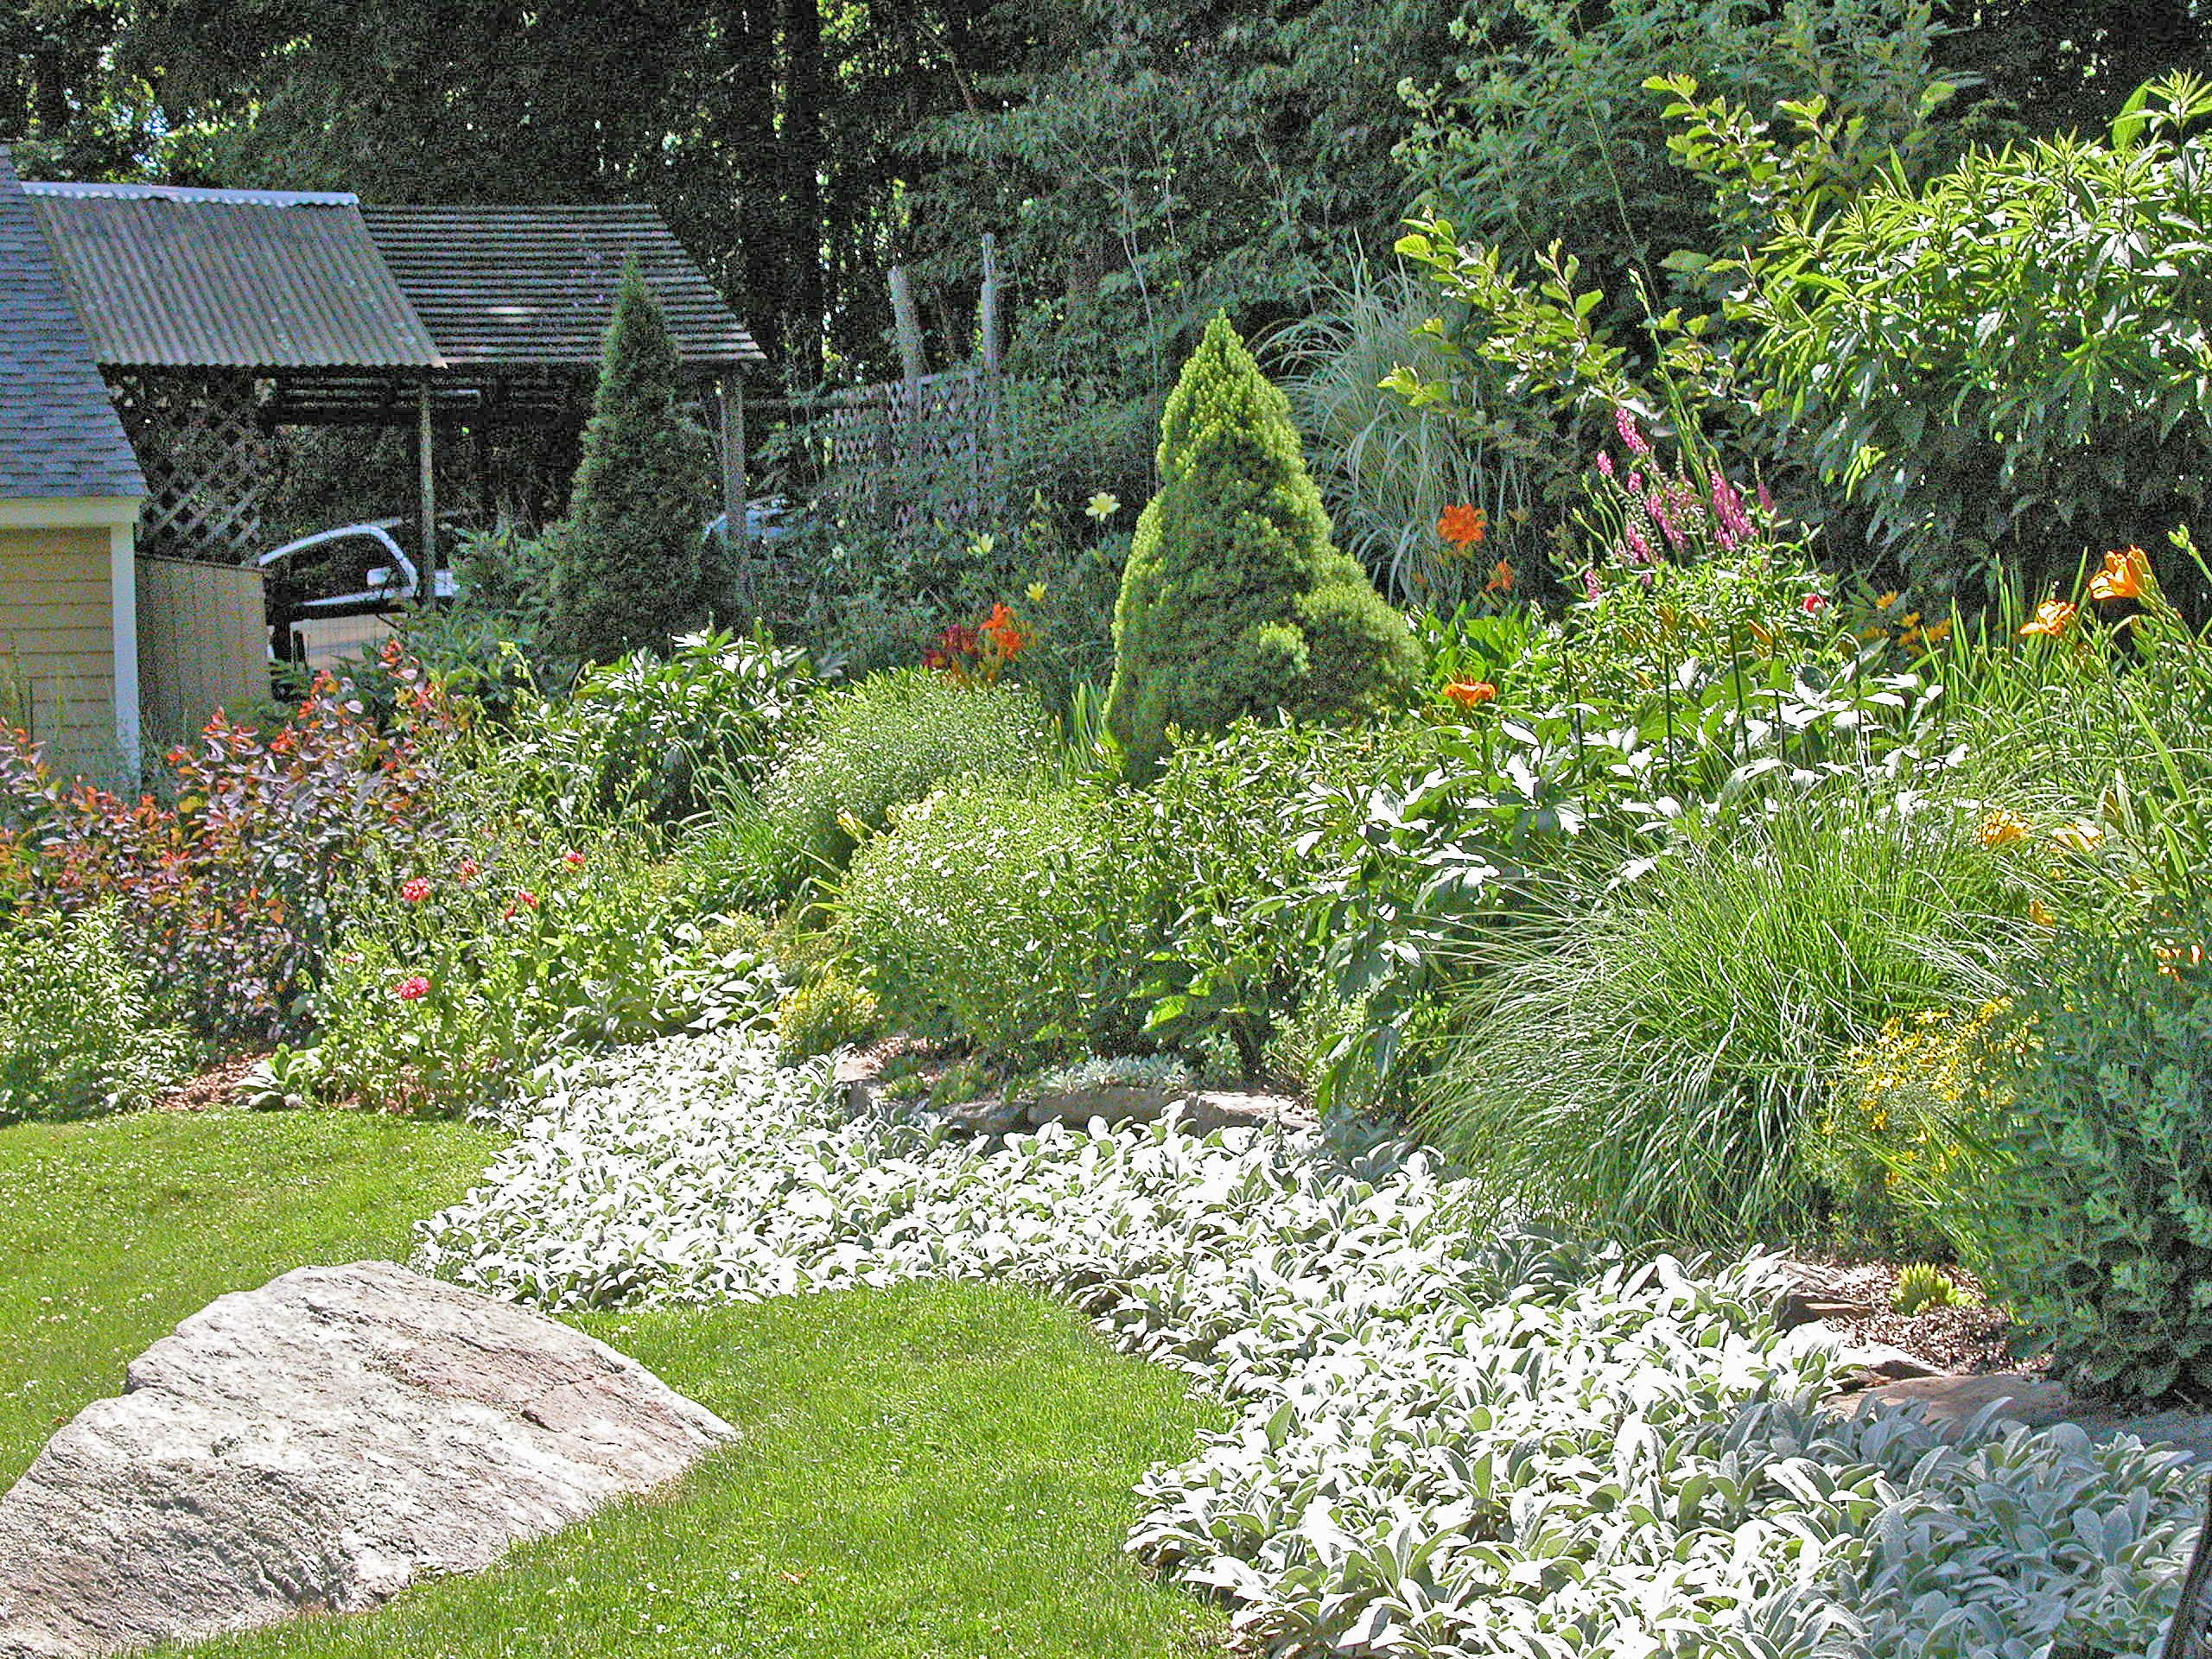 12 Hillside Landscaping Ideas to Maximize Your Yard on Backyard Hill Landscaping Ideas  id=47248